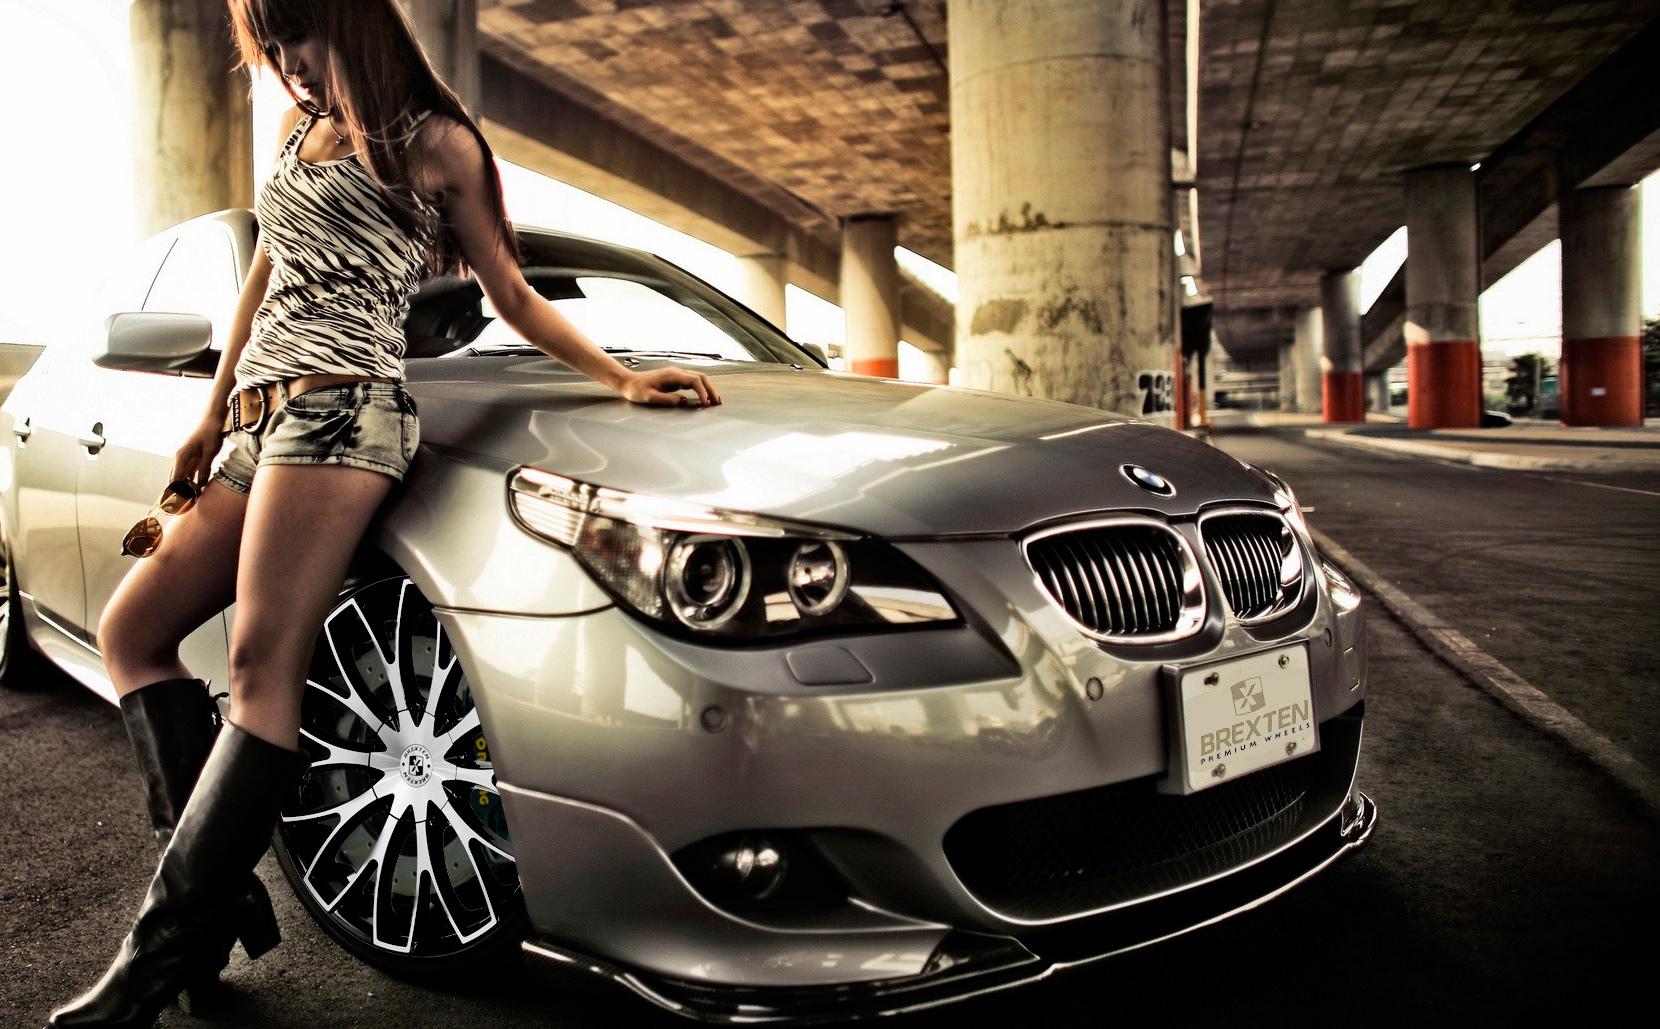 bx20_brexten-wheels_llantass_bmw_5